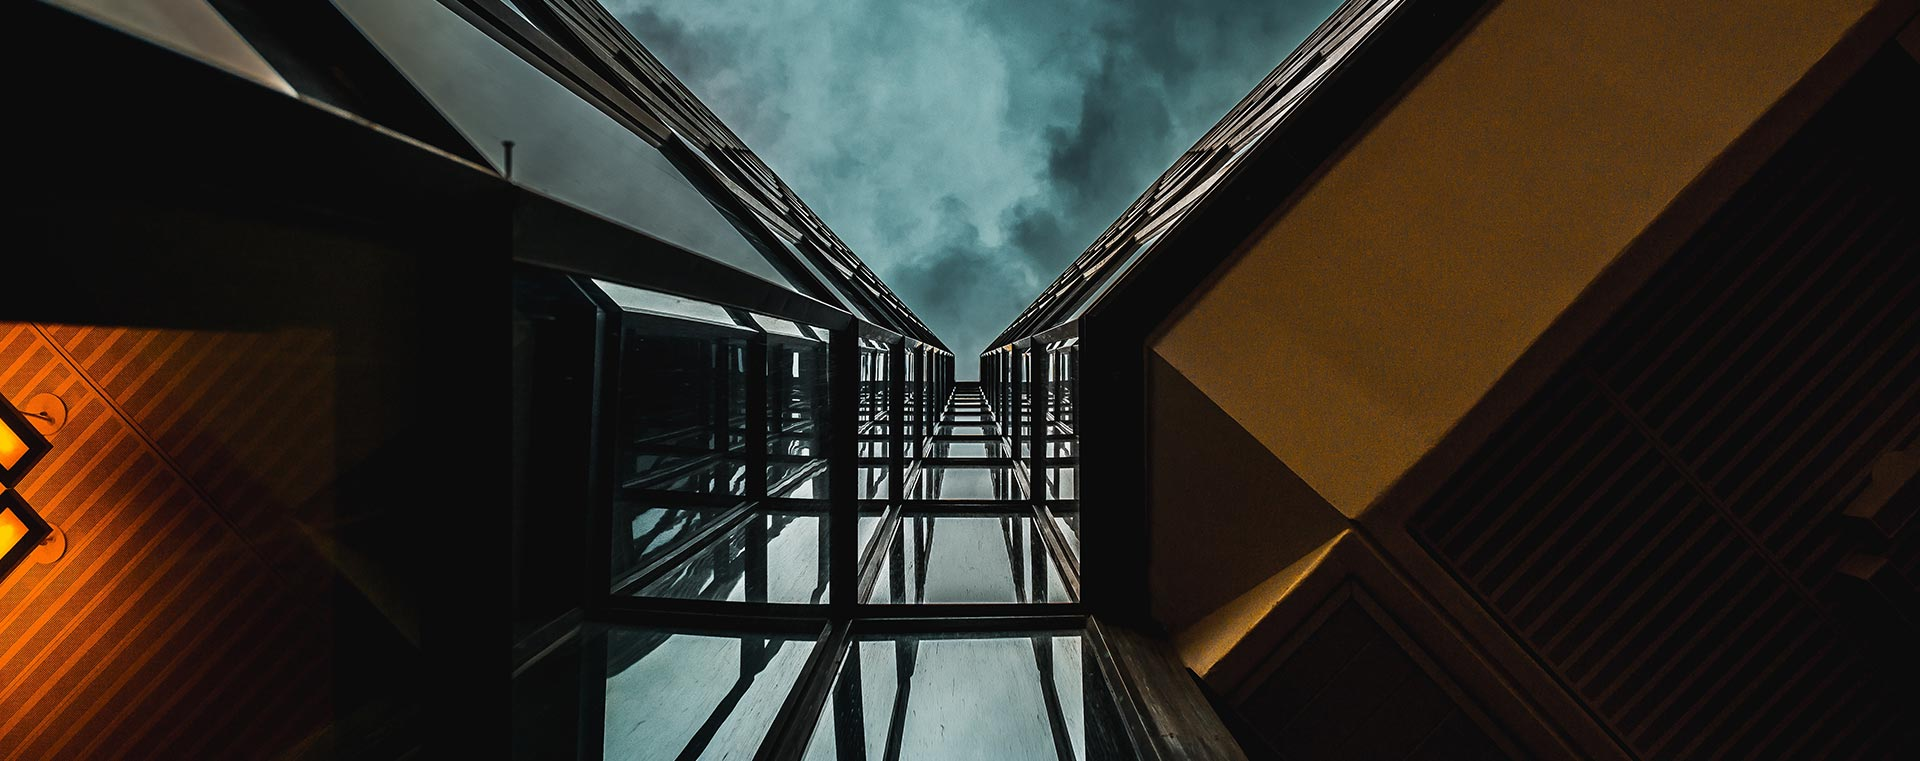 angled-architecture-building-dark-sky